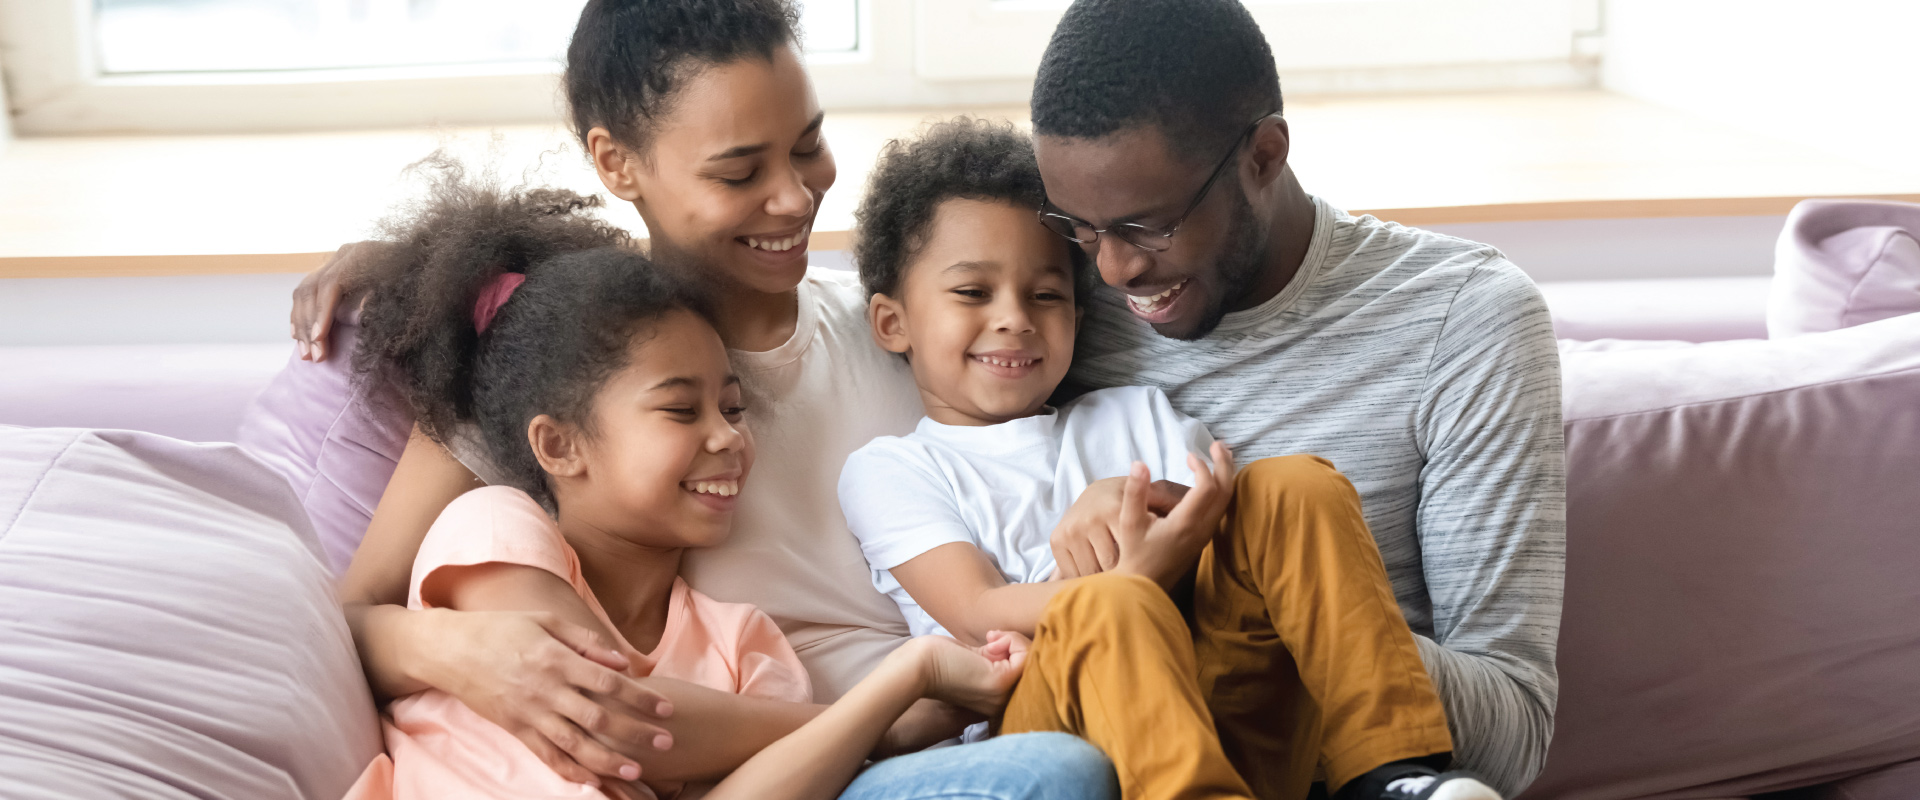 African American family sitting together on couch all smiling